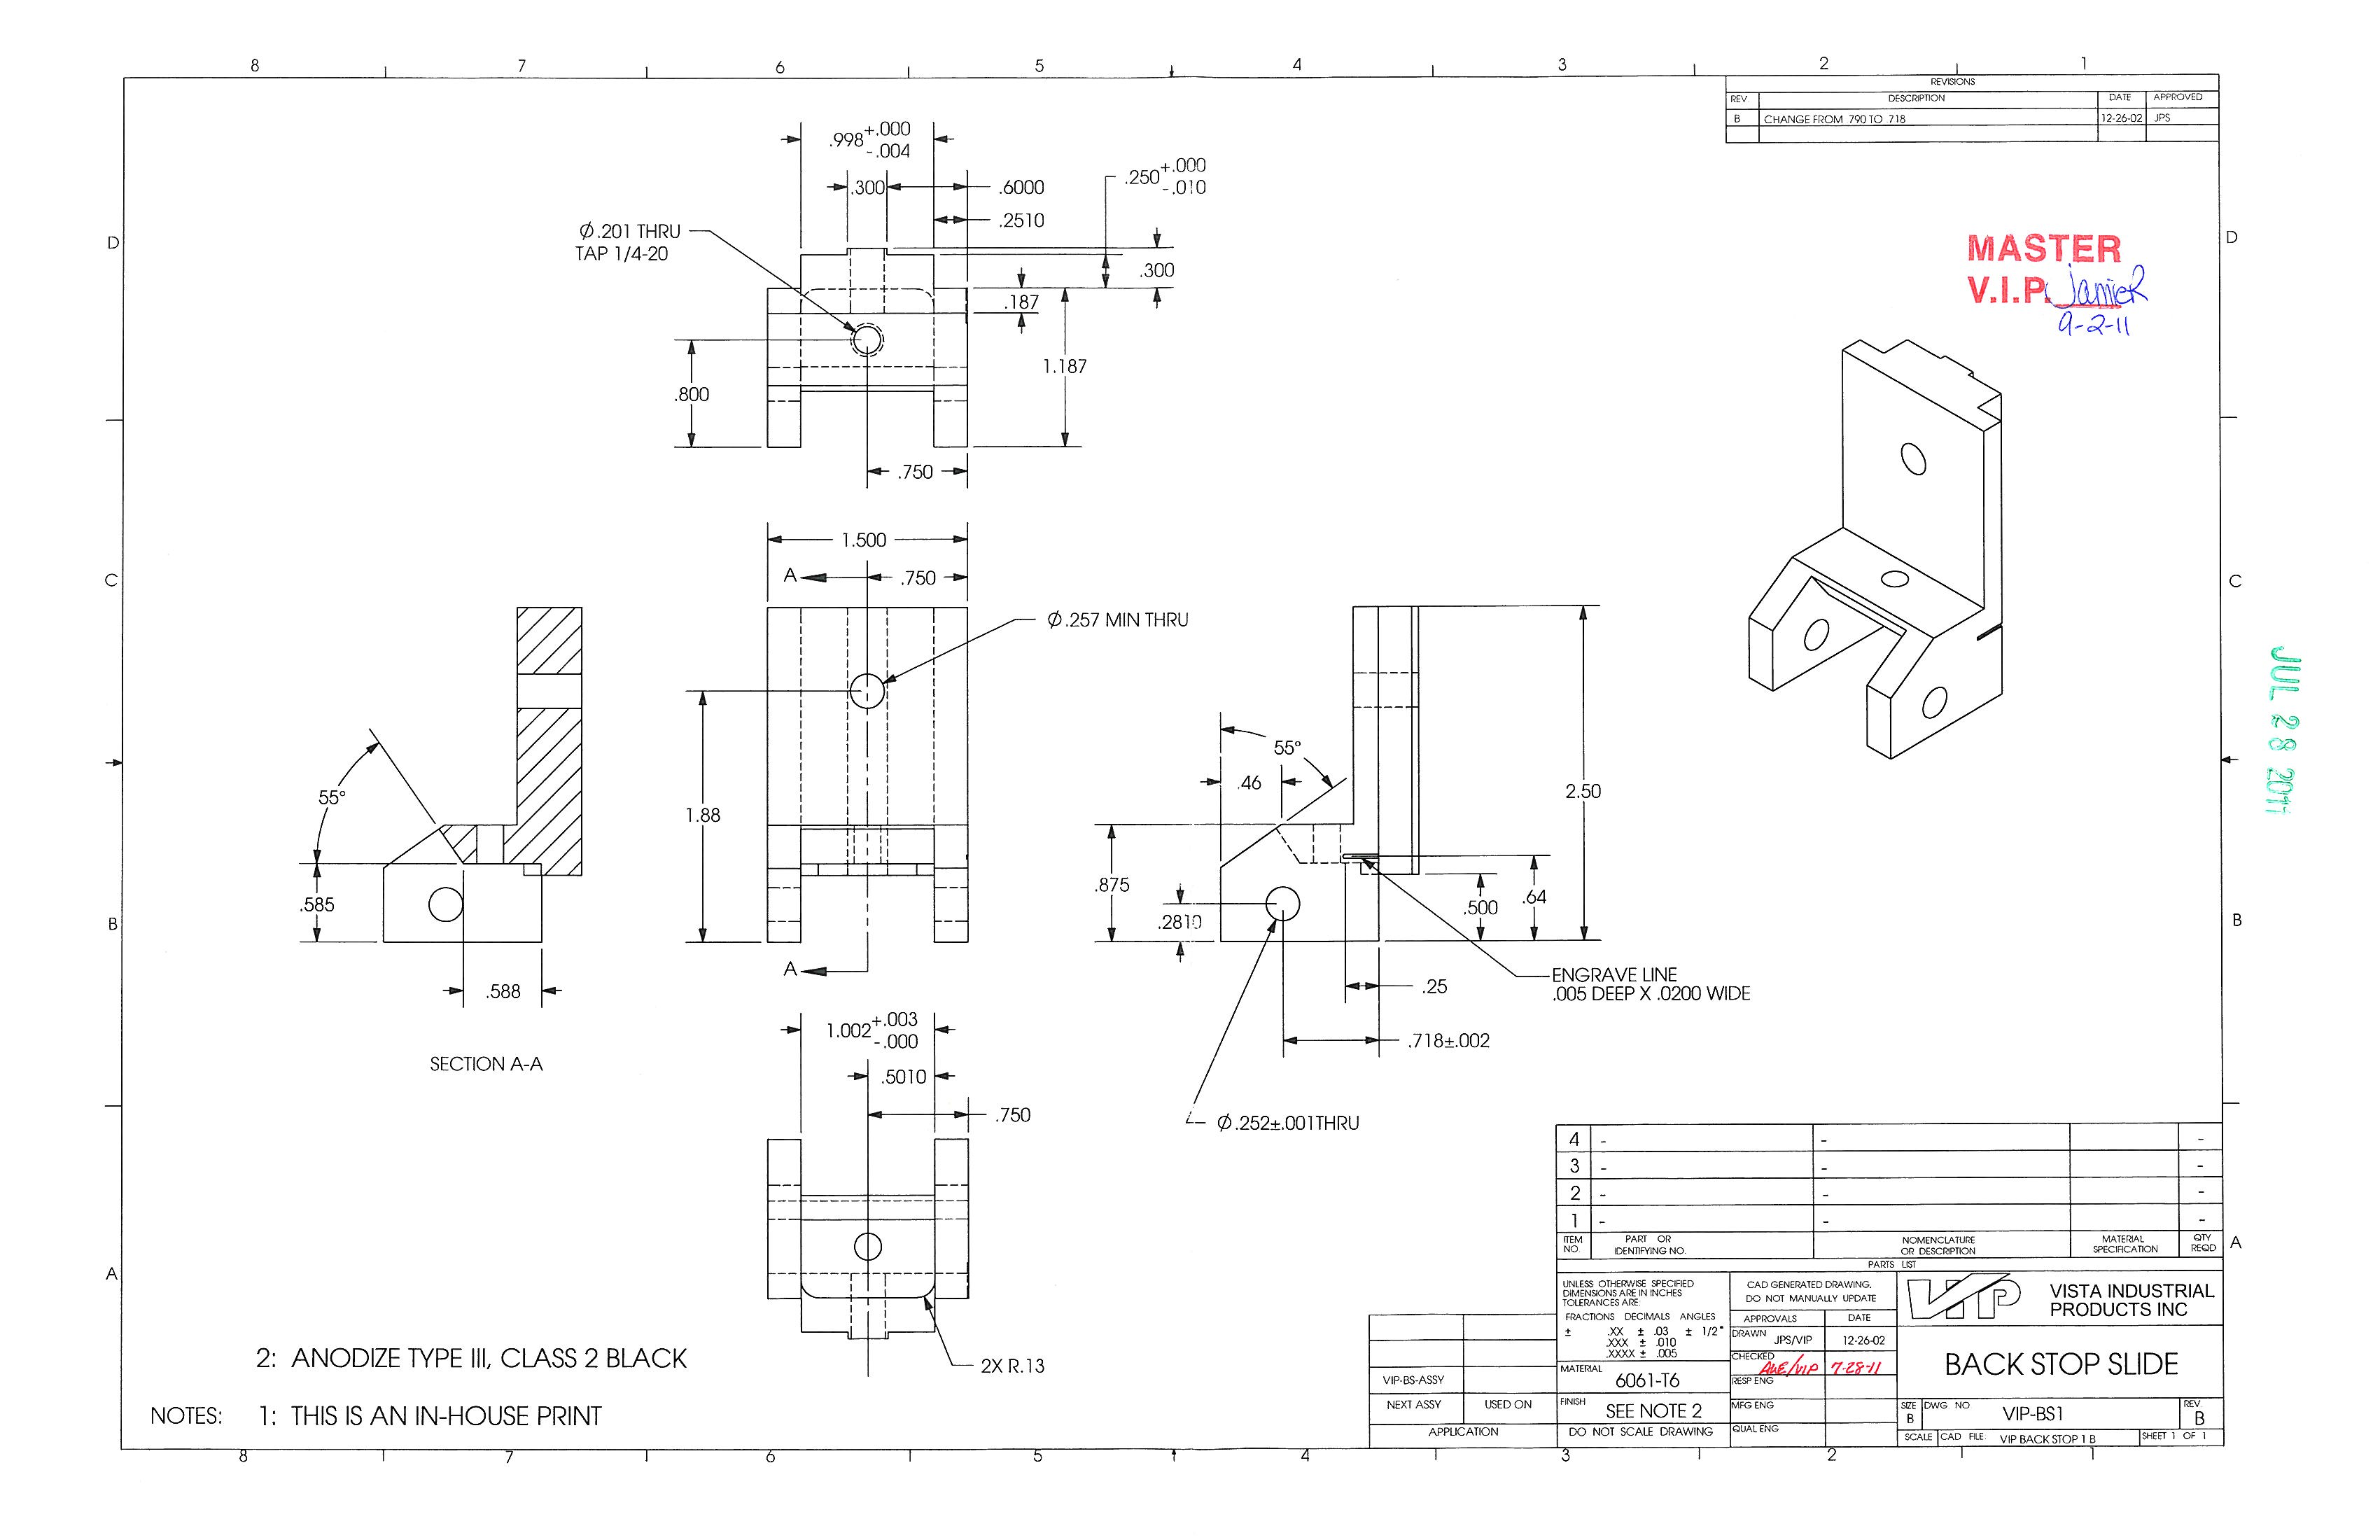 How to read a manufacturing drawing vista industrial products inc biocorpaavc